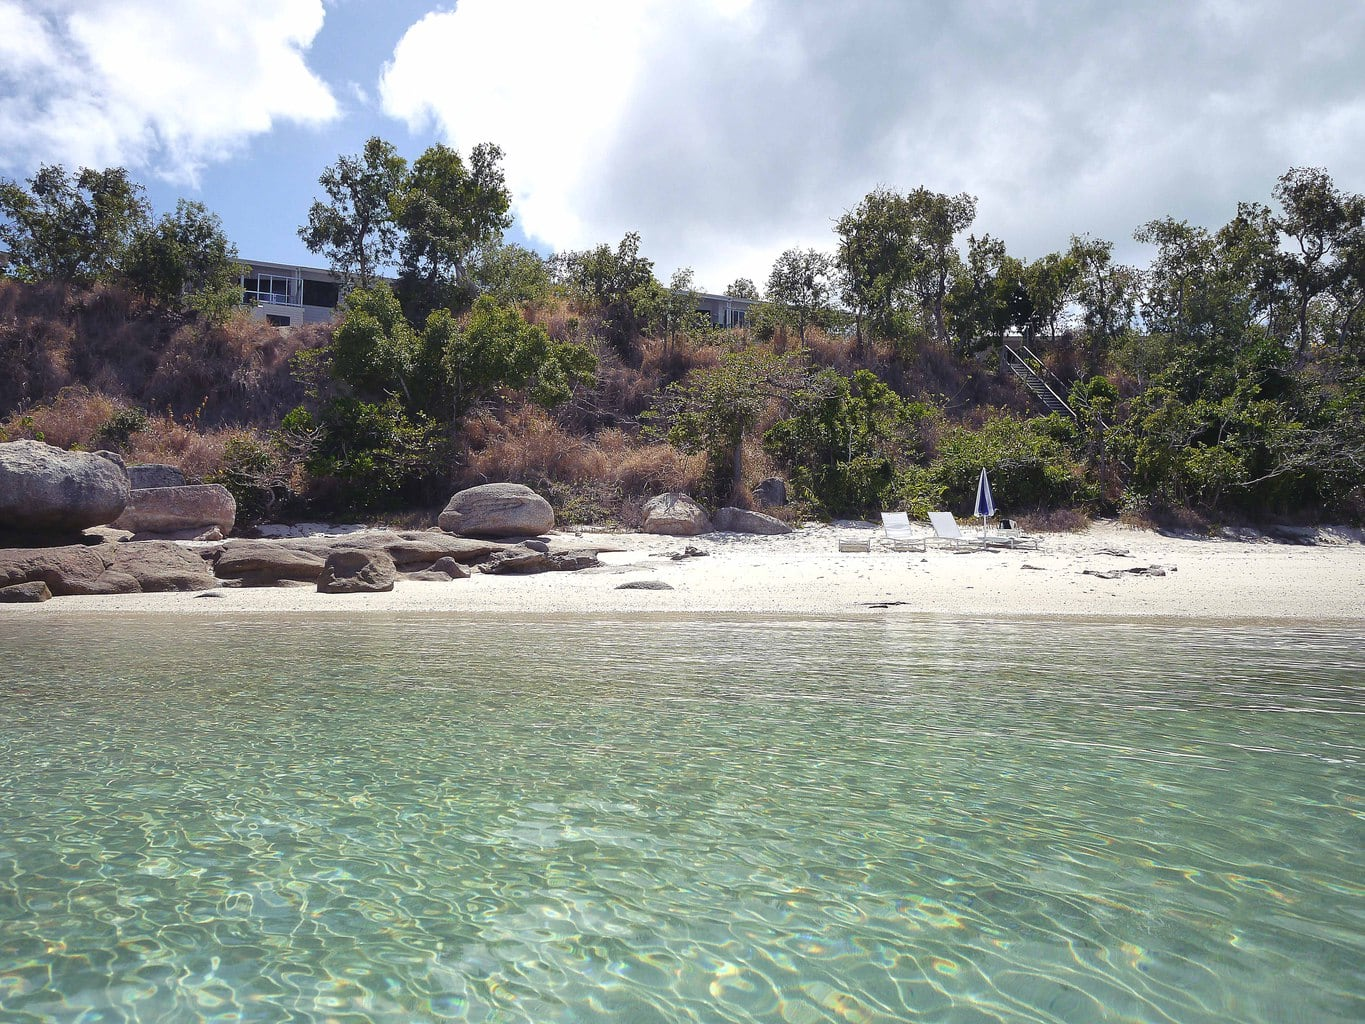 Lizard Island Resort review - the luxury hotel on the Great Barrier Reef